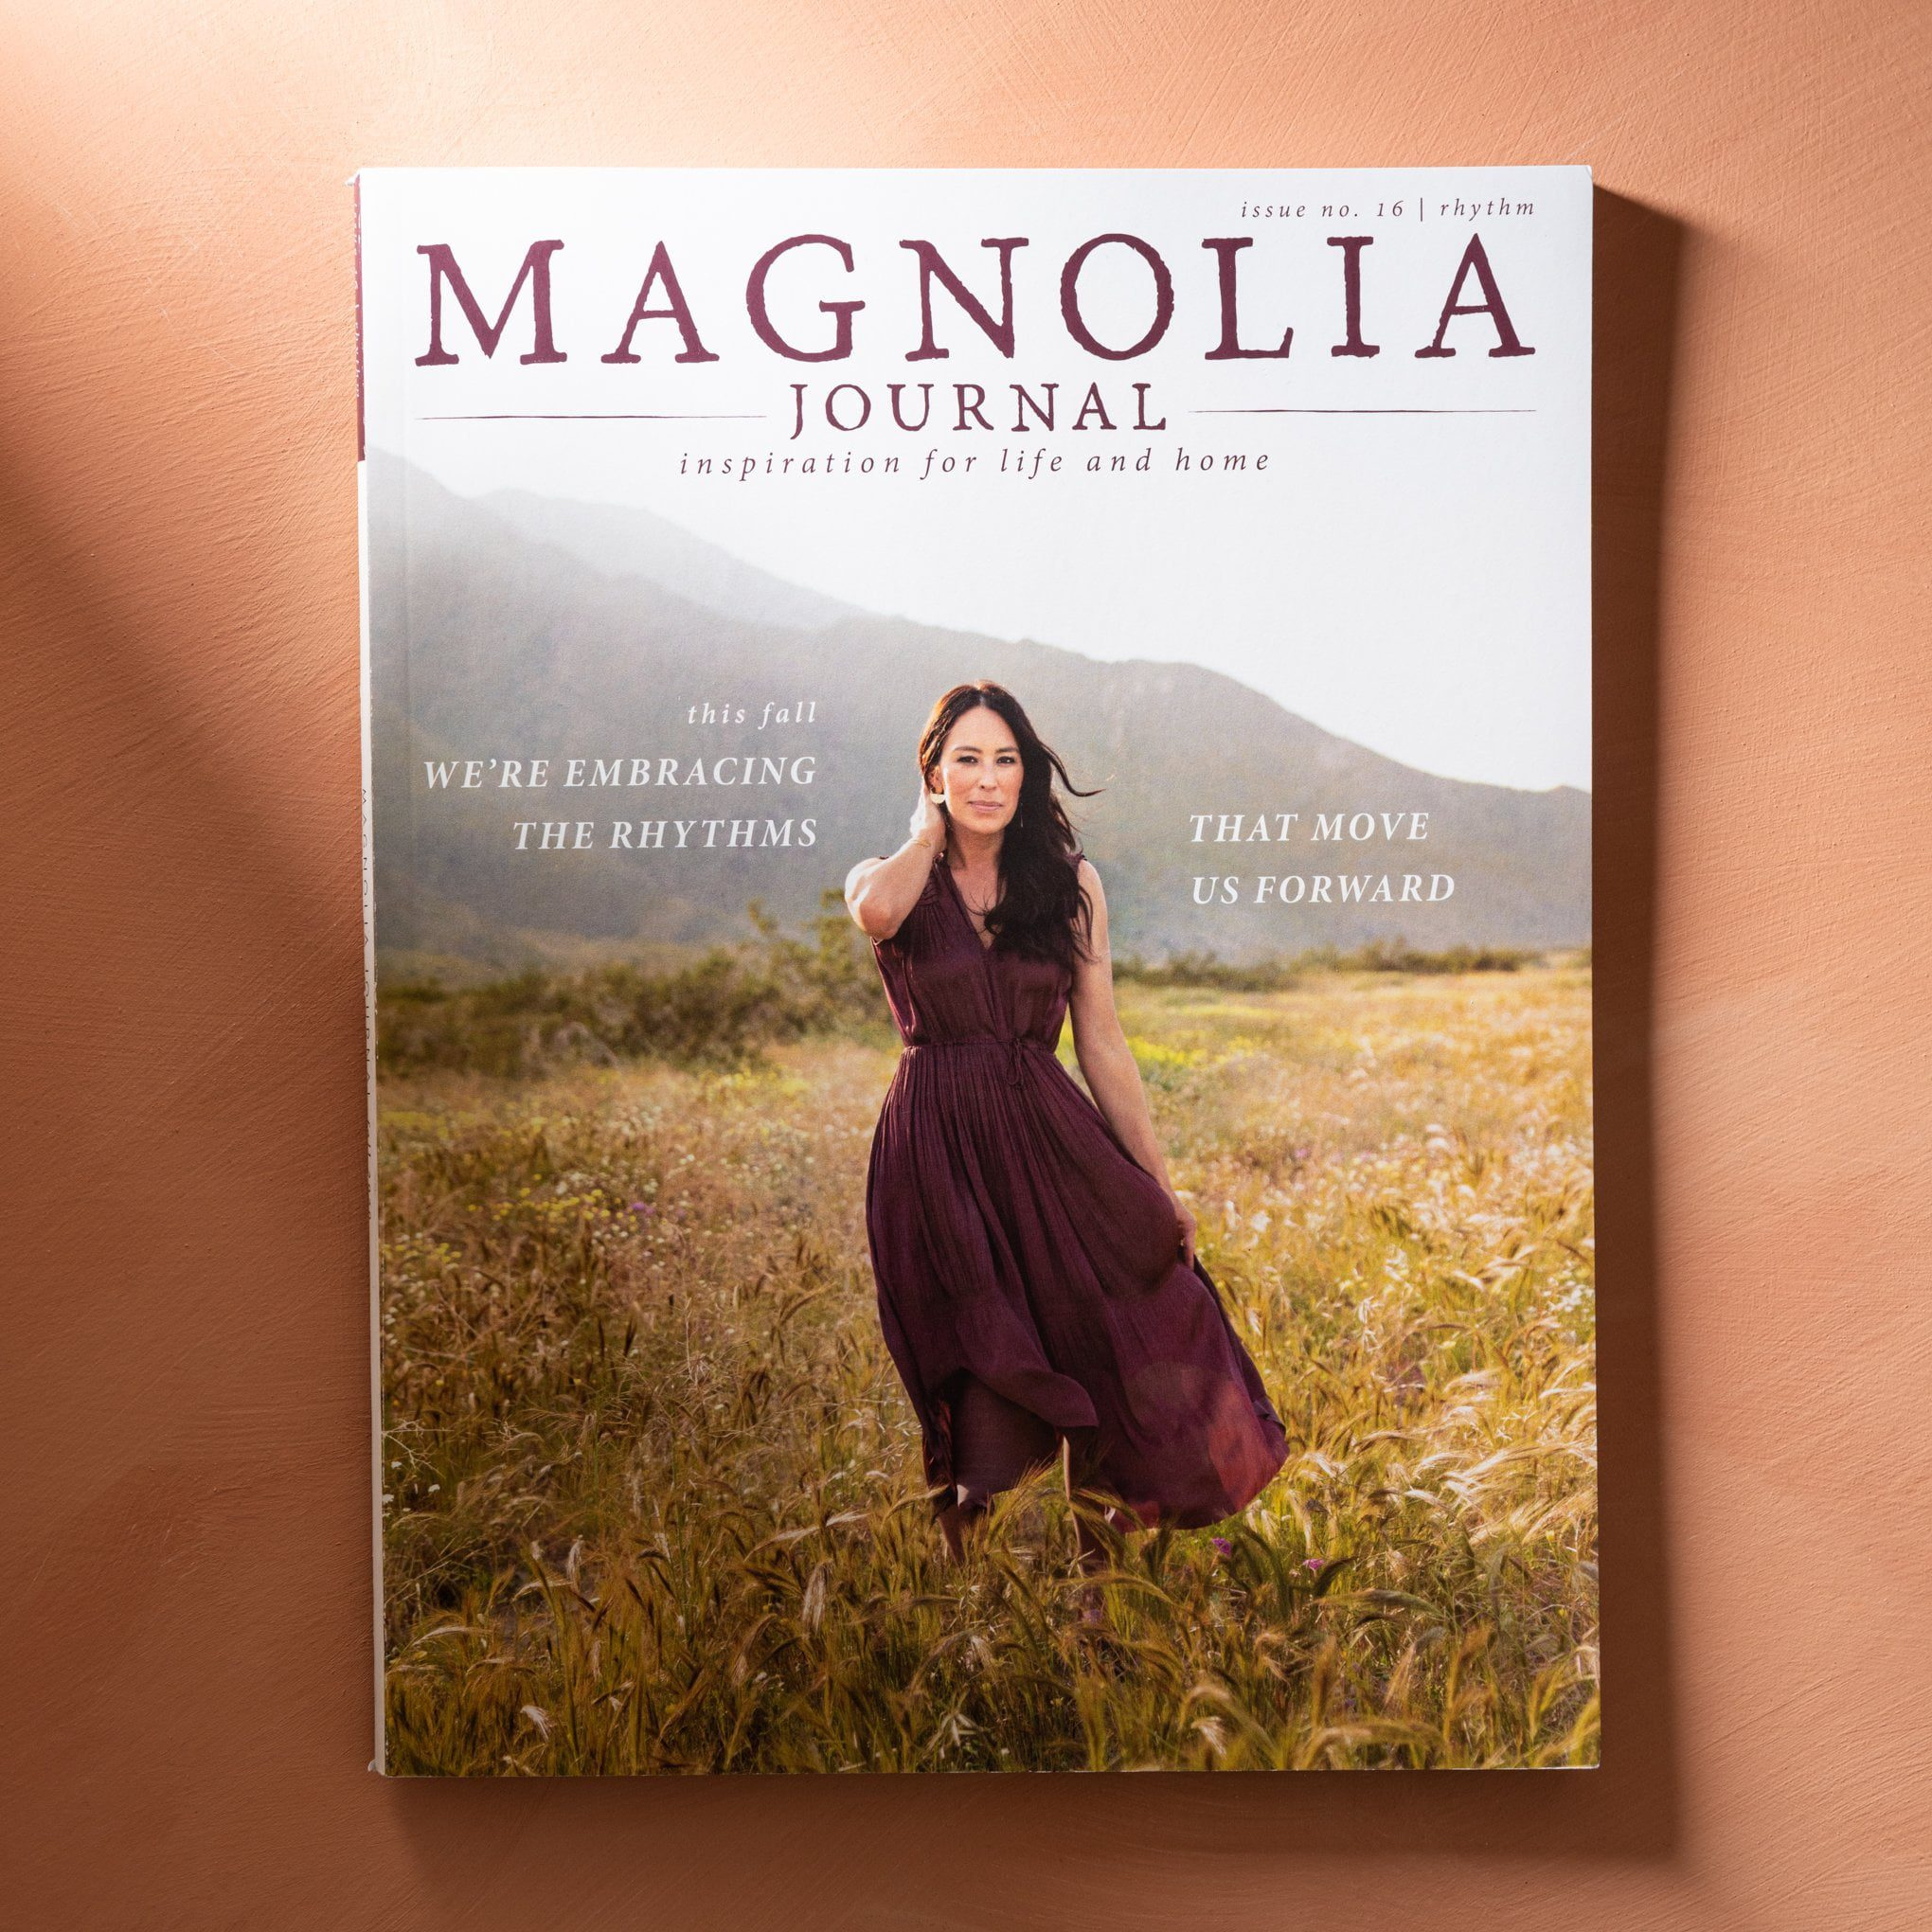 What is magnolia journal